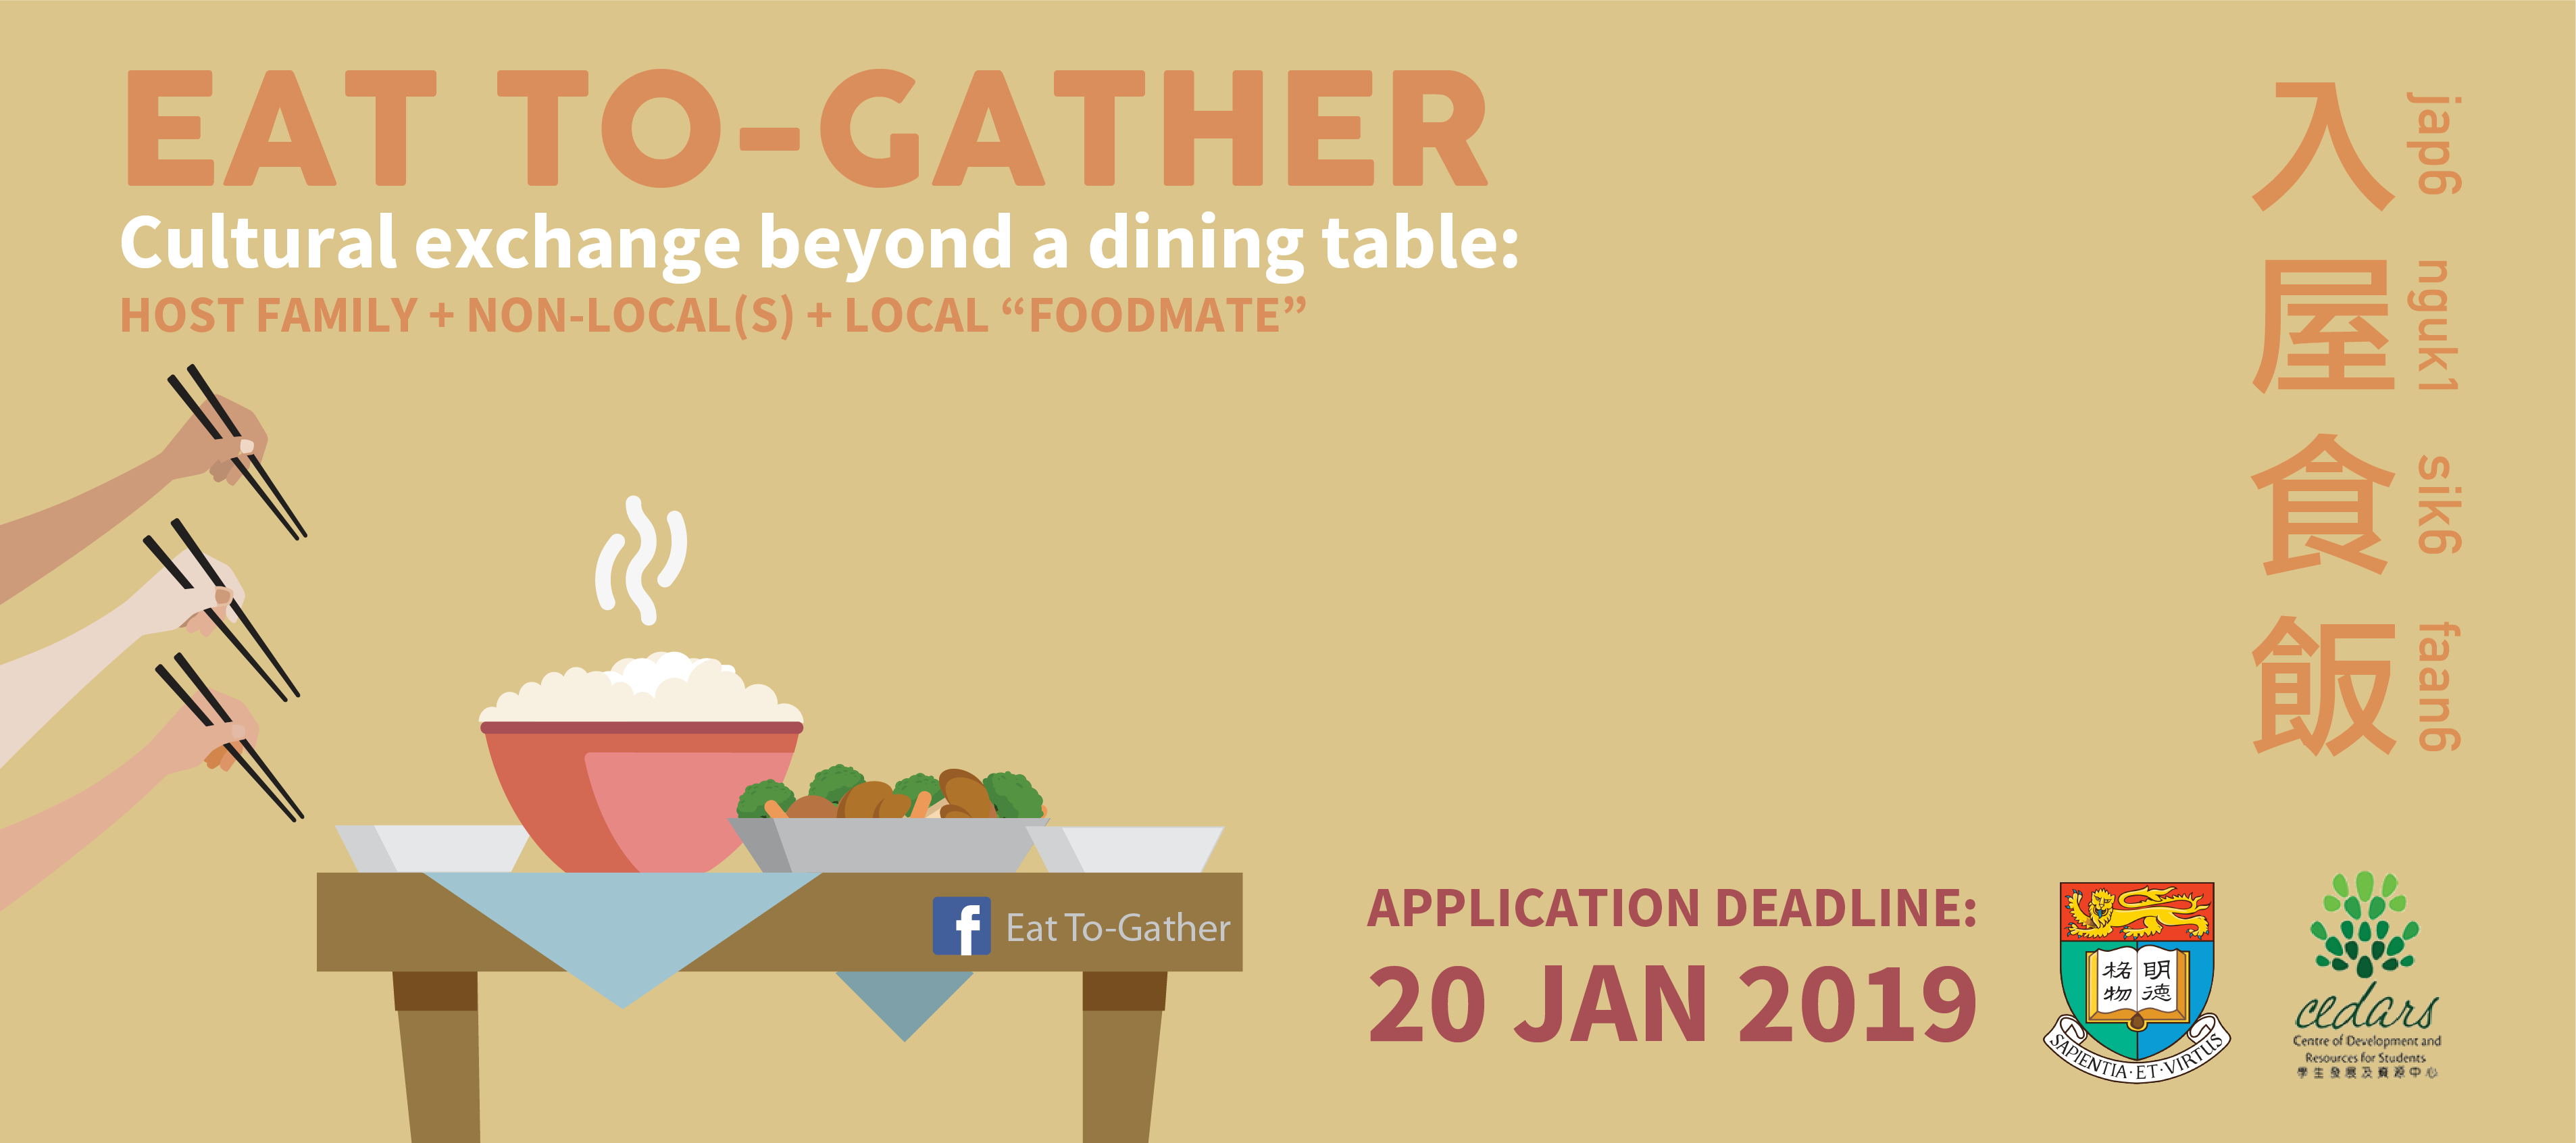 Eat To-Gather Programme